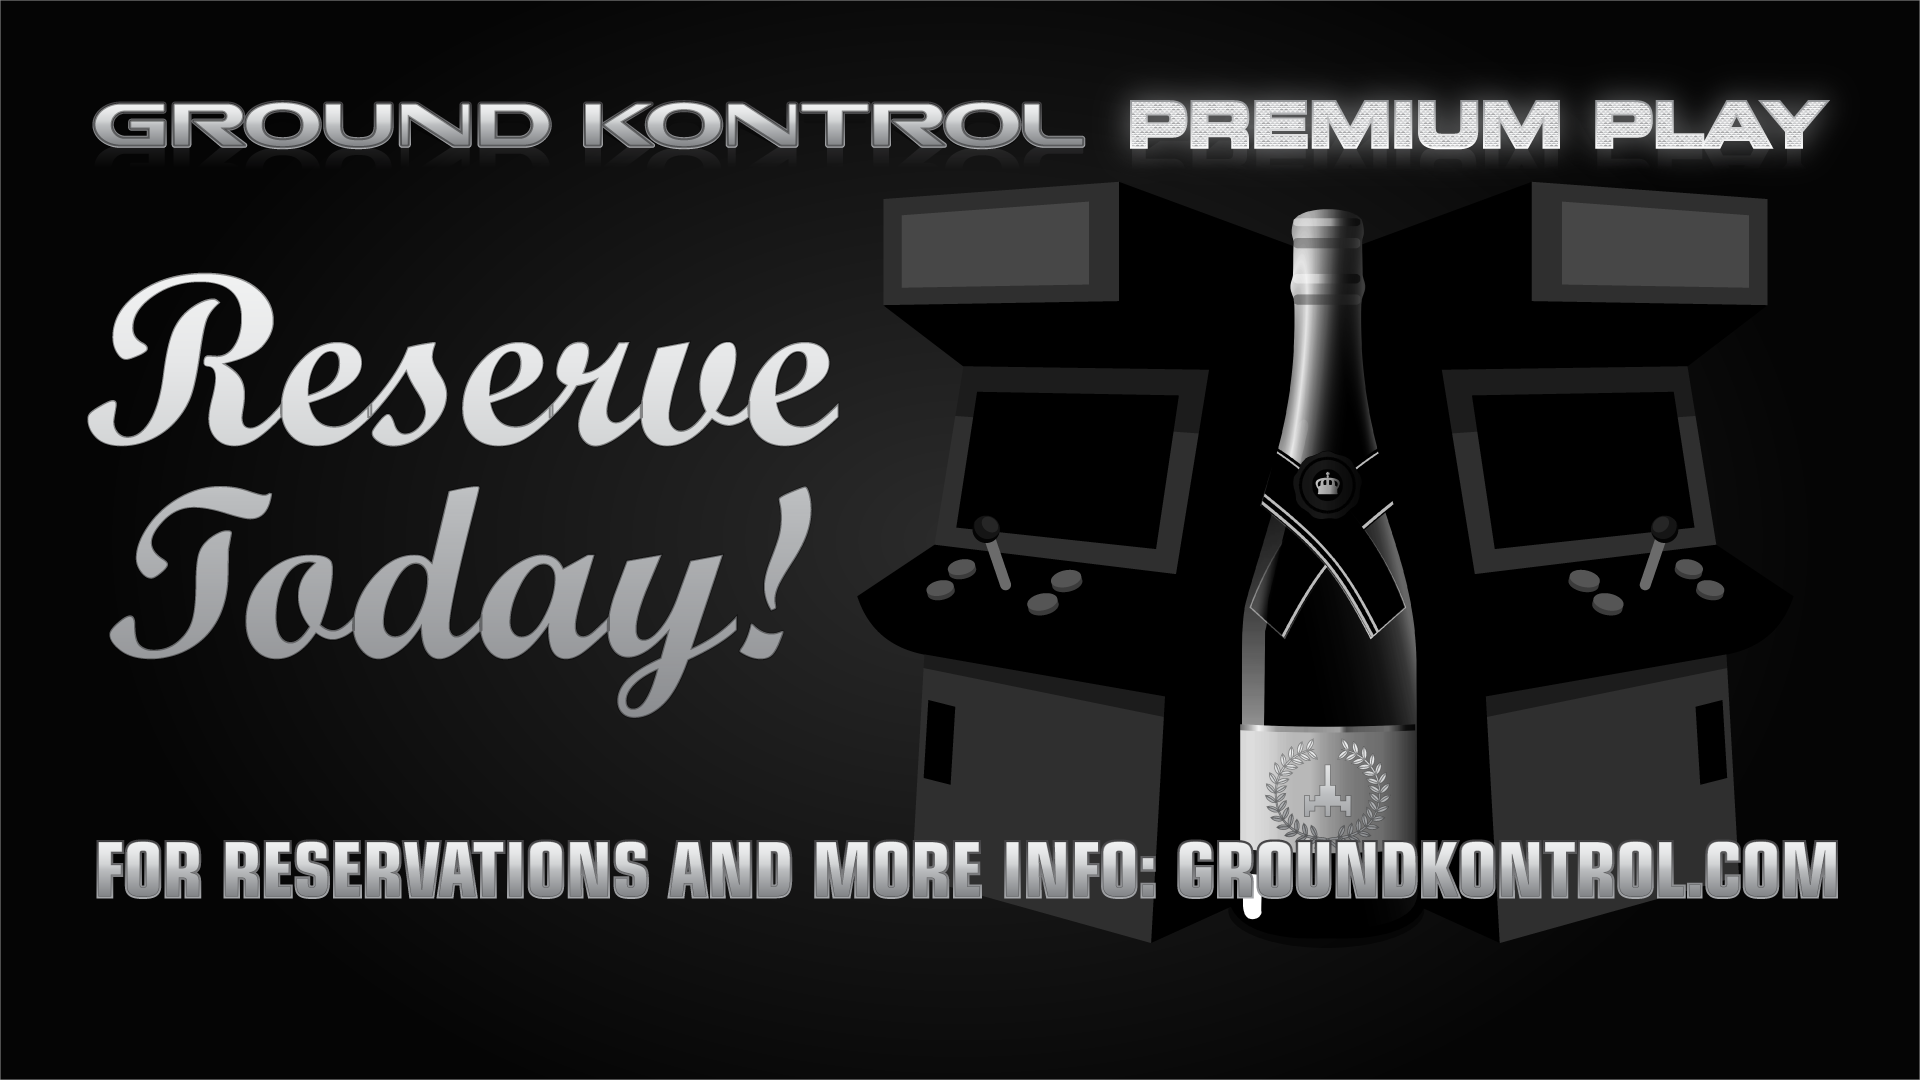 Introducing Ground Kontrol Premium Play!